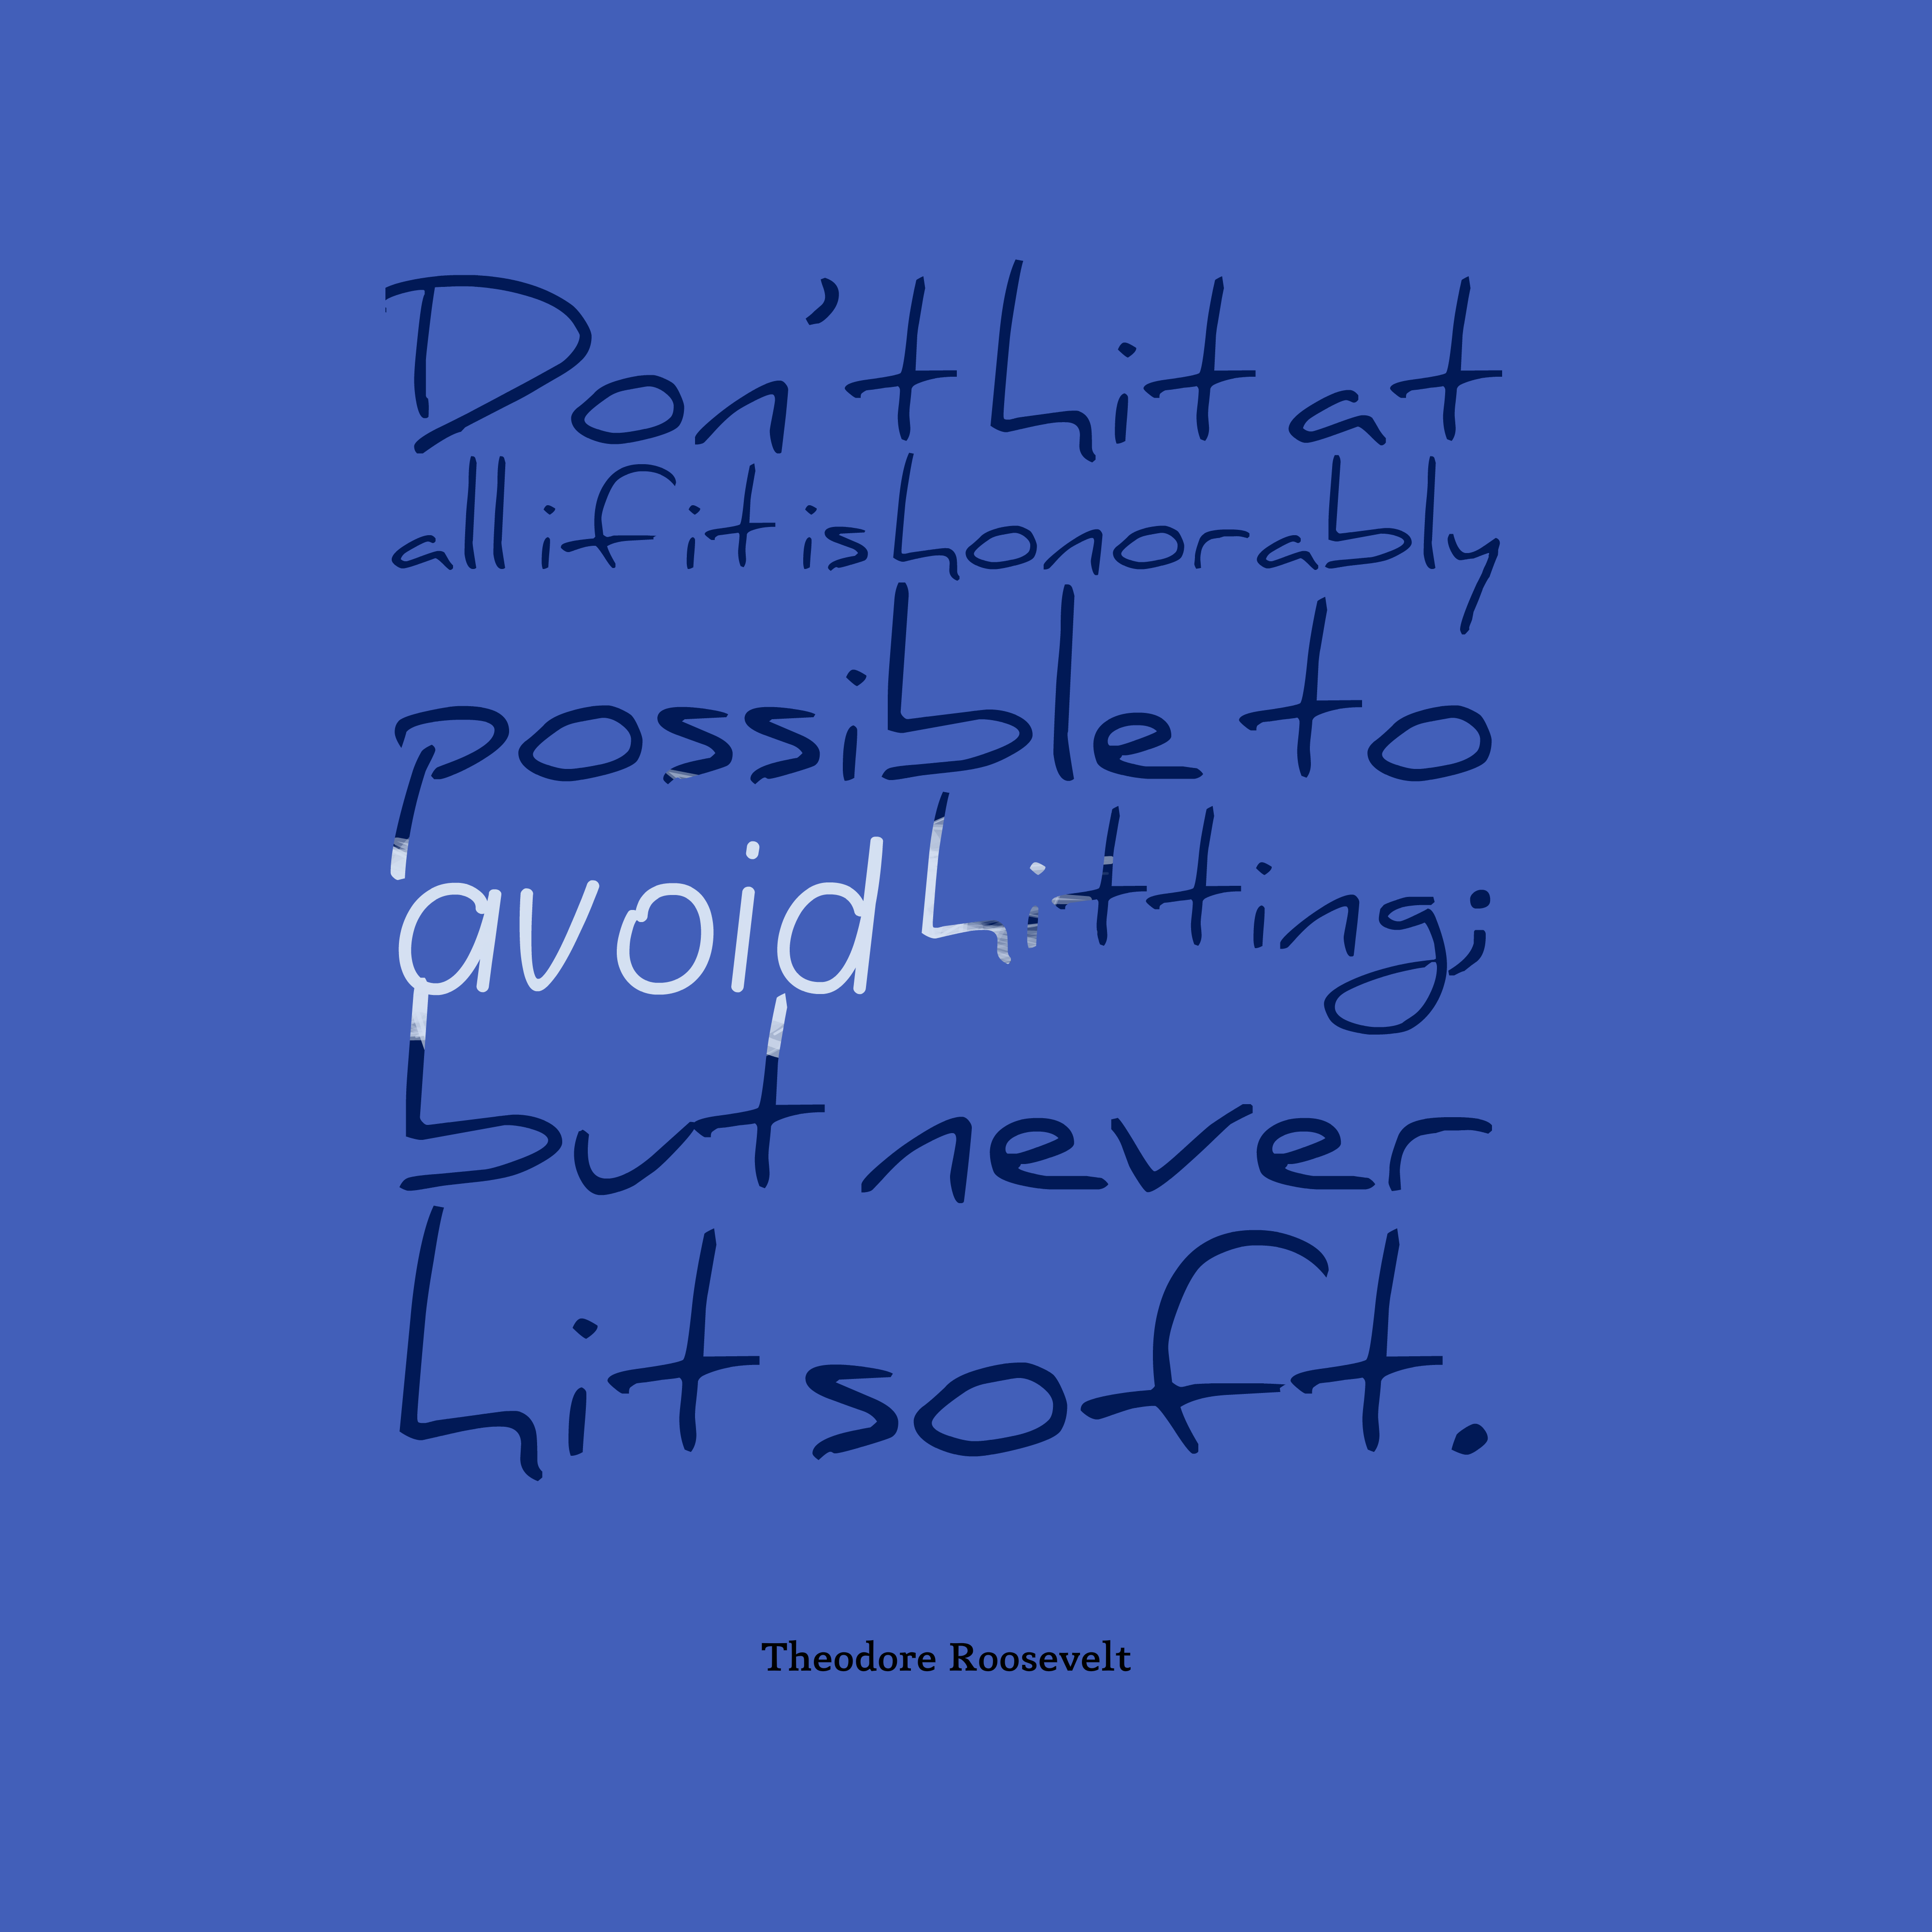 Quotes image of Don't hit at all if it is honorably possible to avoid hitting; but never hit soft.